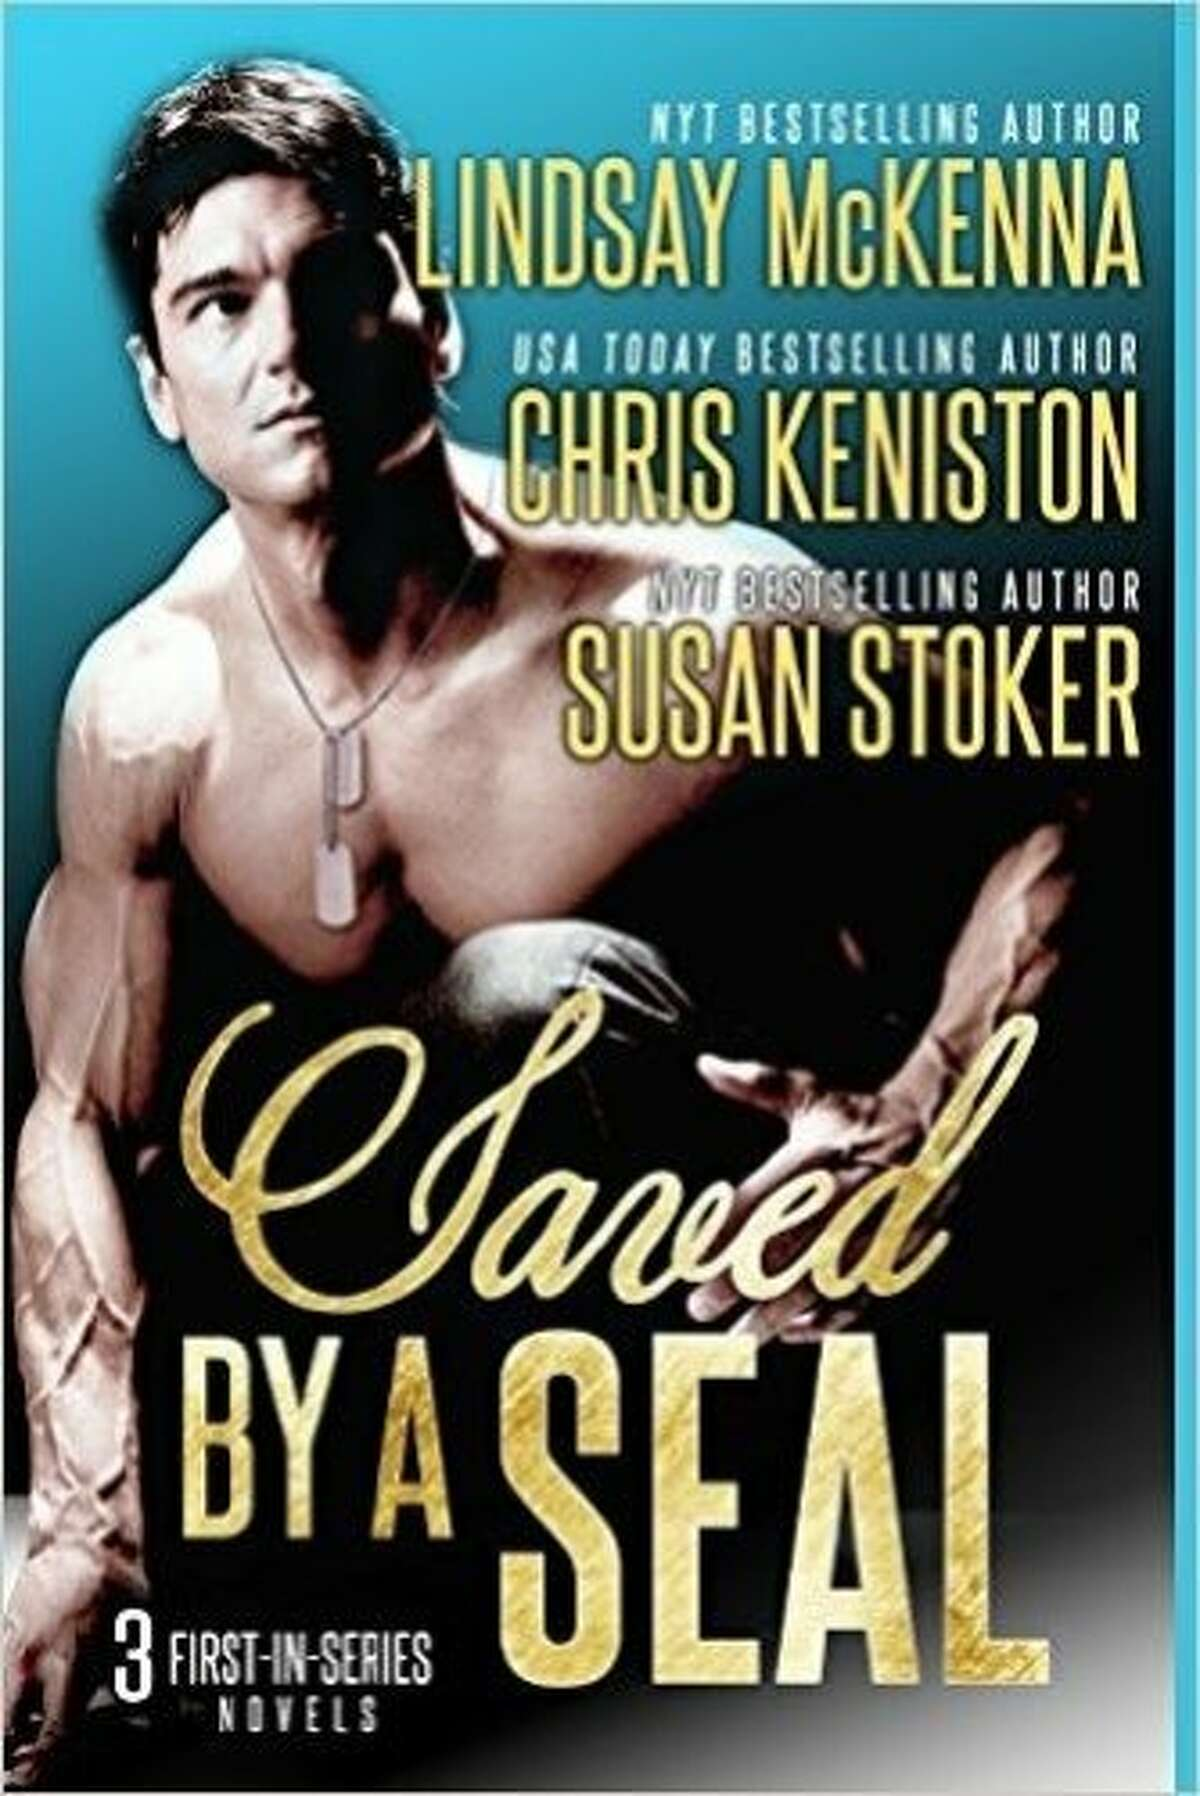 """""""Saved by a Seal"""" the 461st romance novel cover featuring model Jason Aaron Baca, who now has beaten Fabio's records for most romance novel cover appearances."""